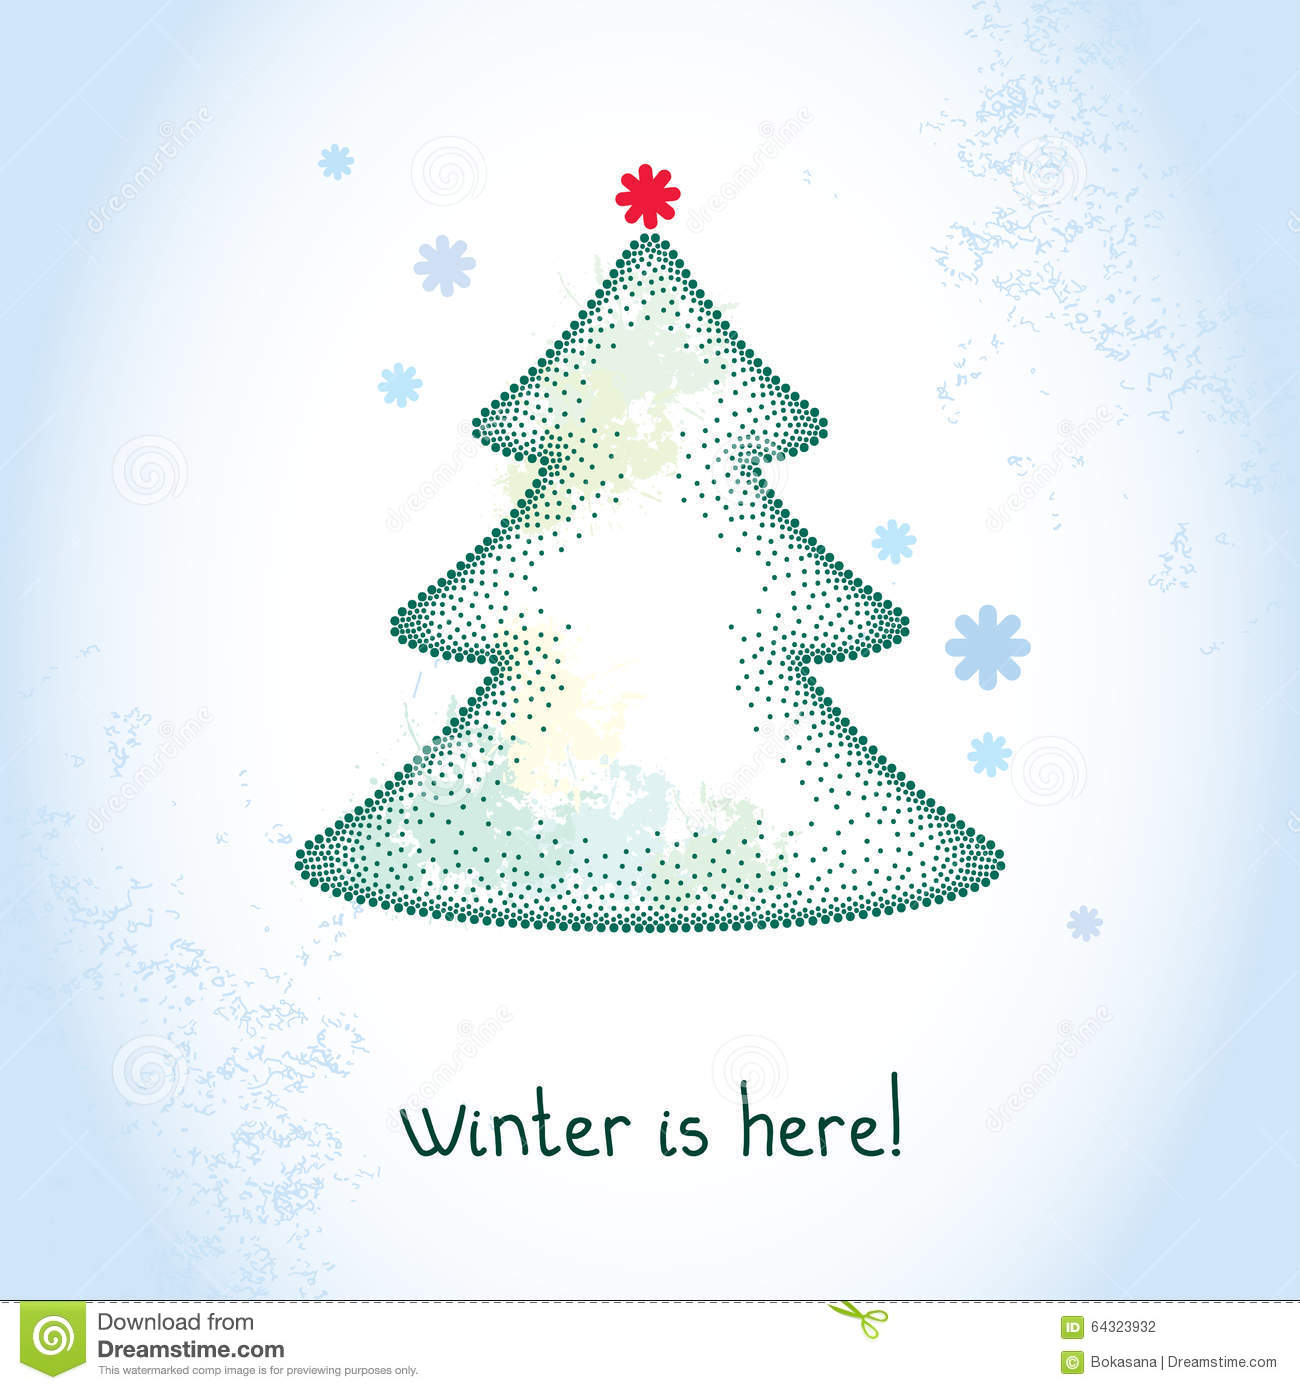 Download Dotted Christmas Tree With Snowflakes On The Textured Blue Background Blots In Pastel Color